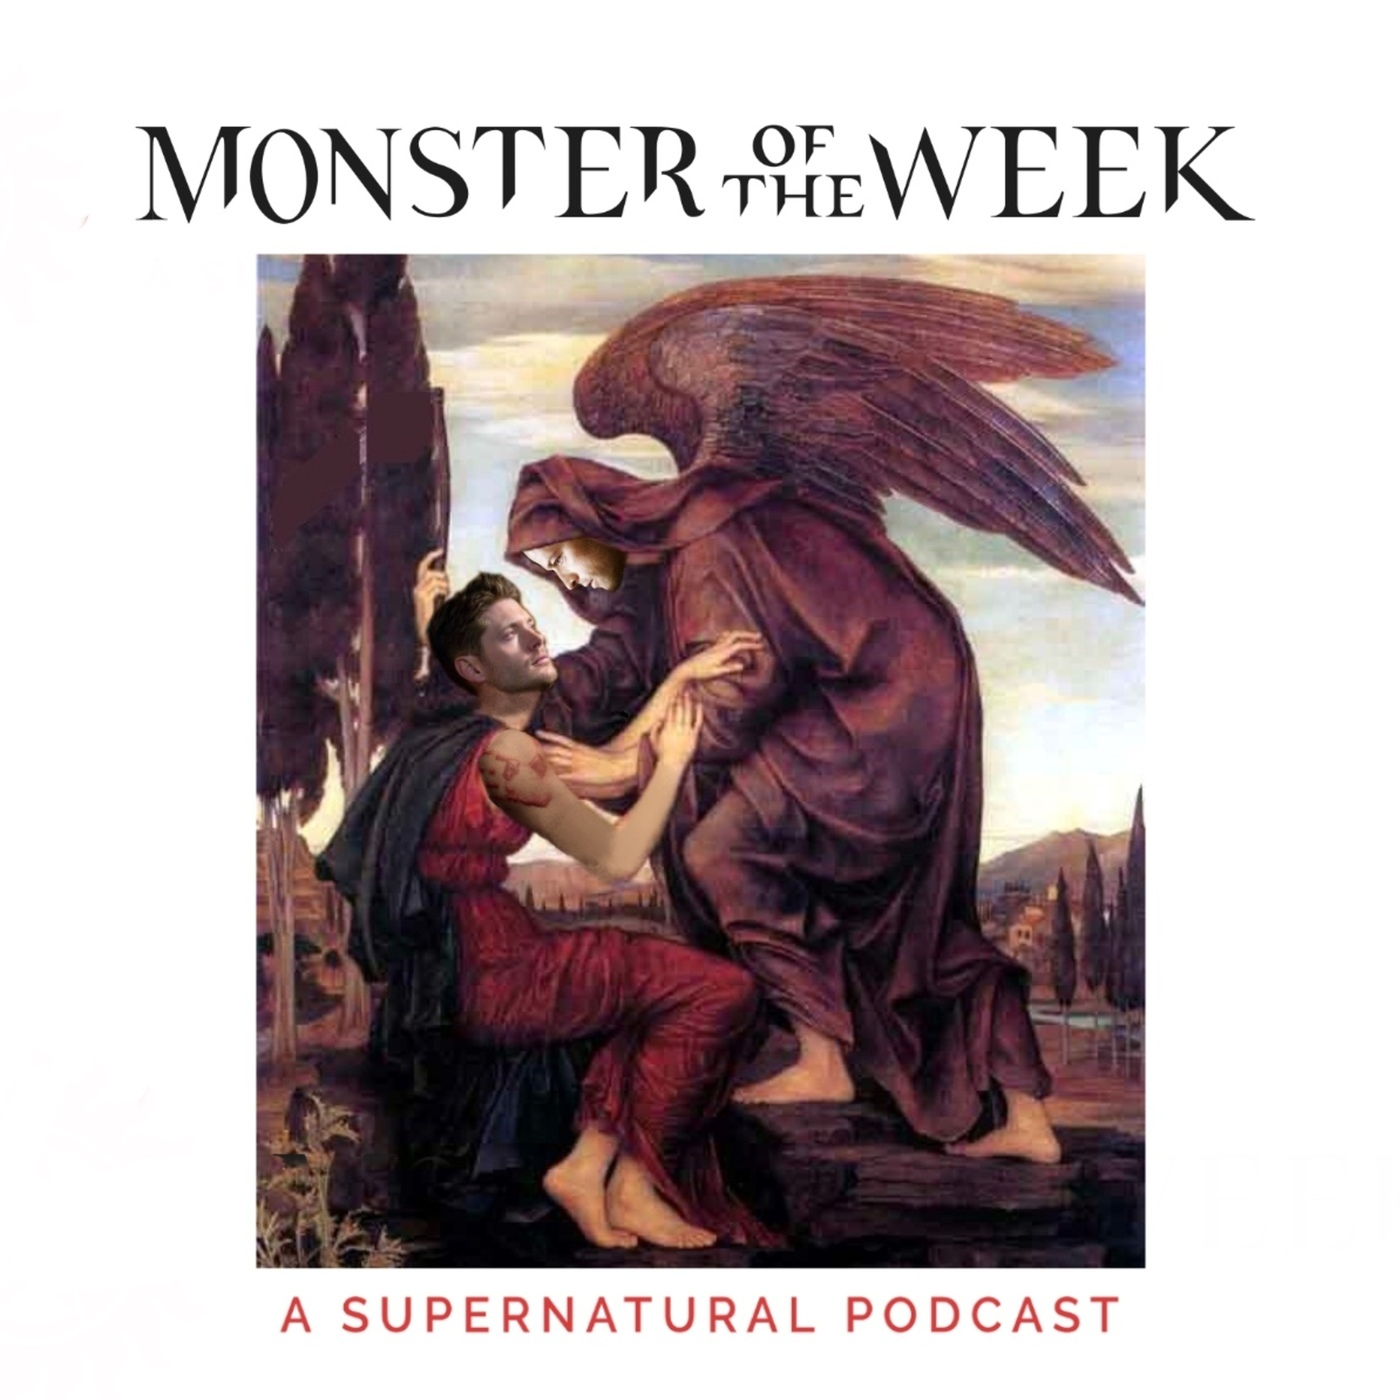 Monster Of The Week: A Supernatural Podcast 235: Have You SEEN His Kickflips?